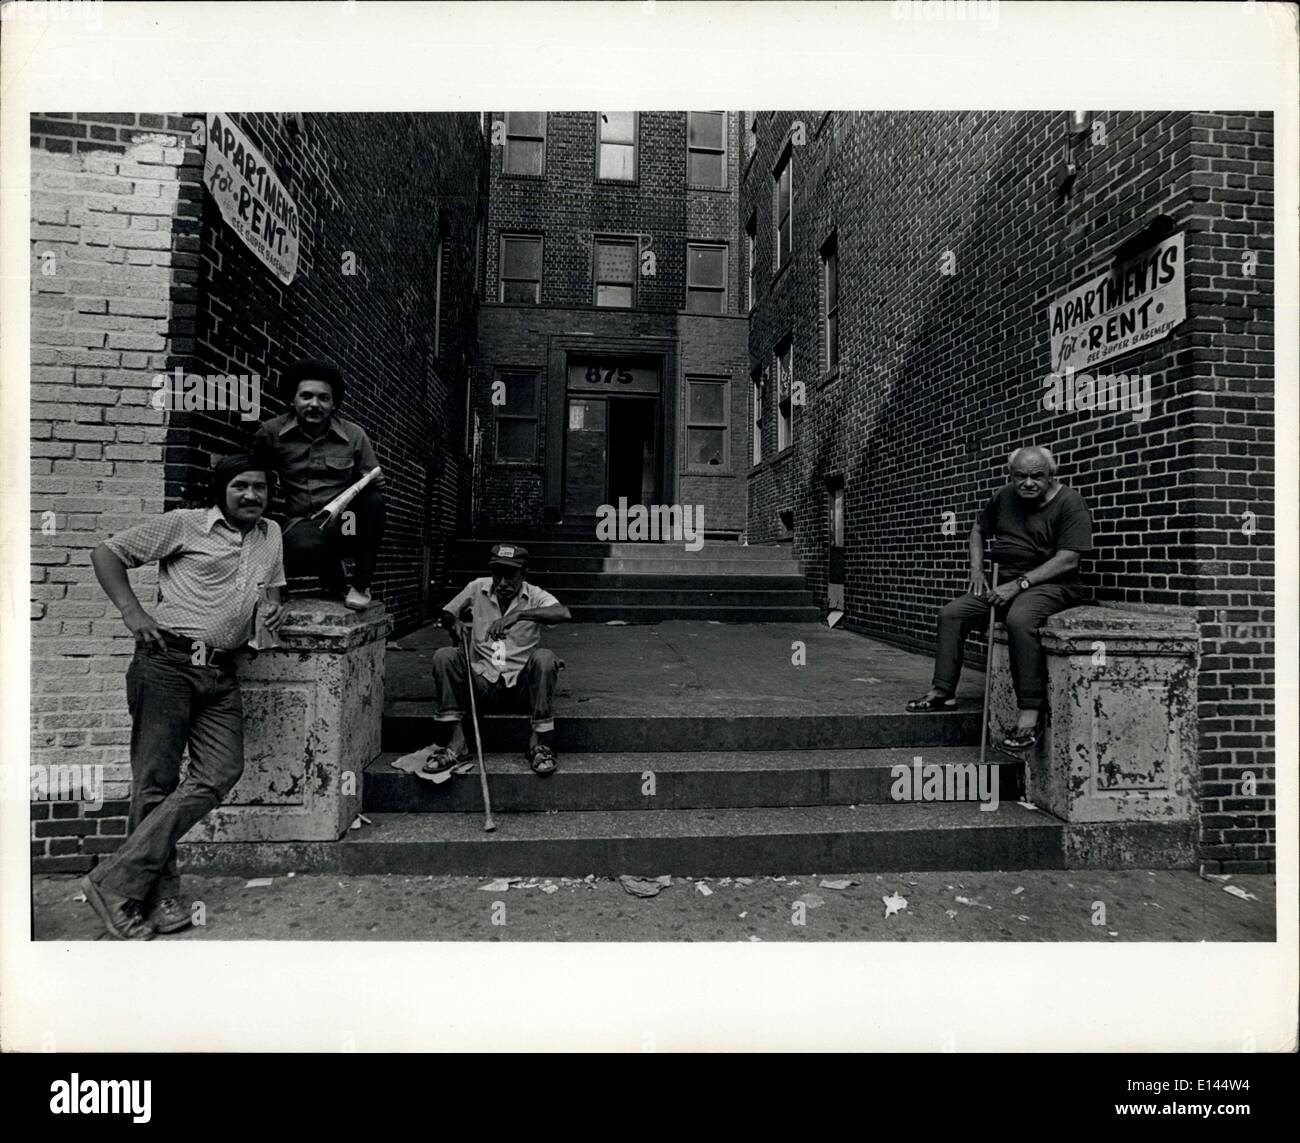 Apr. 04, 2012 - South Bronx - they have nothing to do. - Stock Image